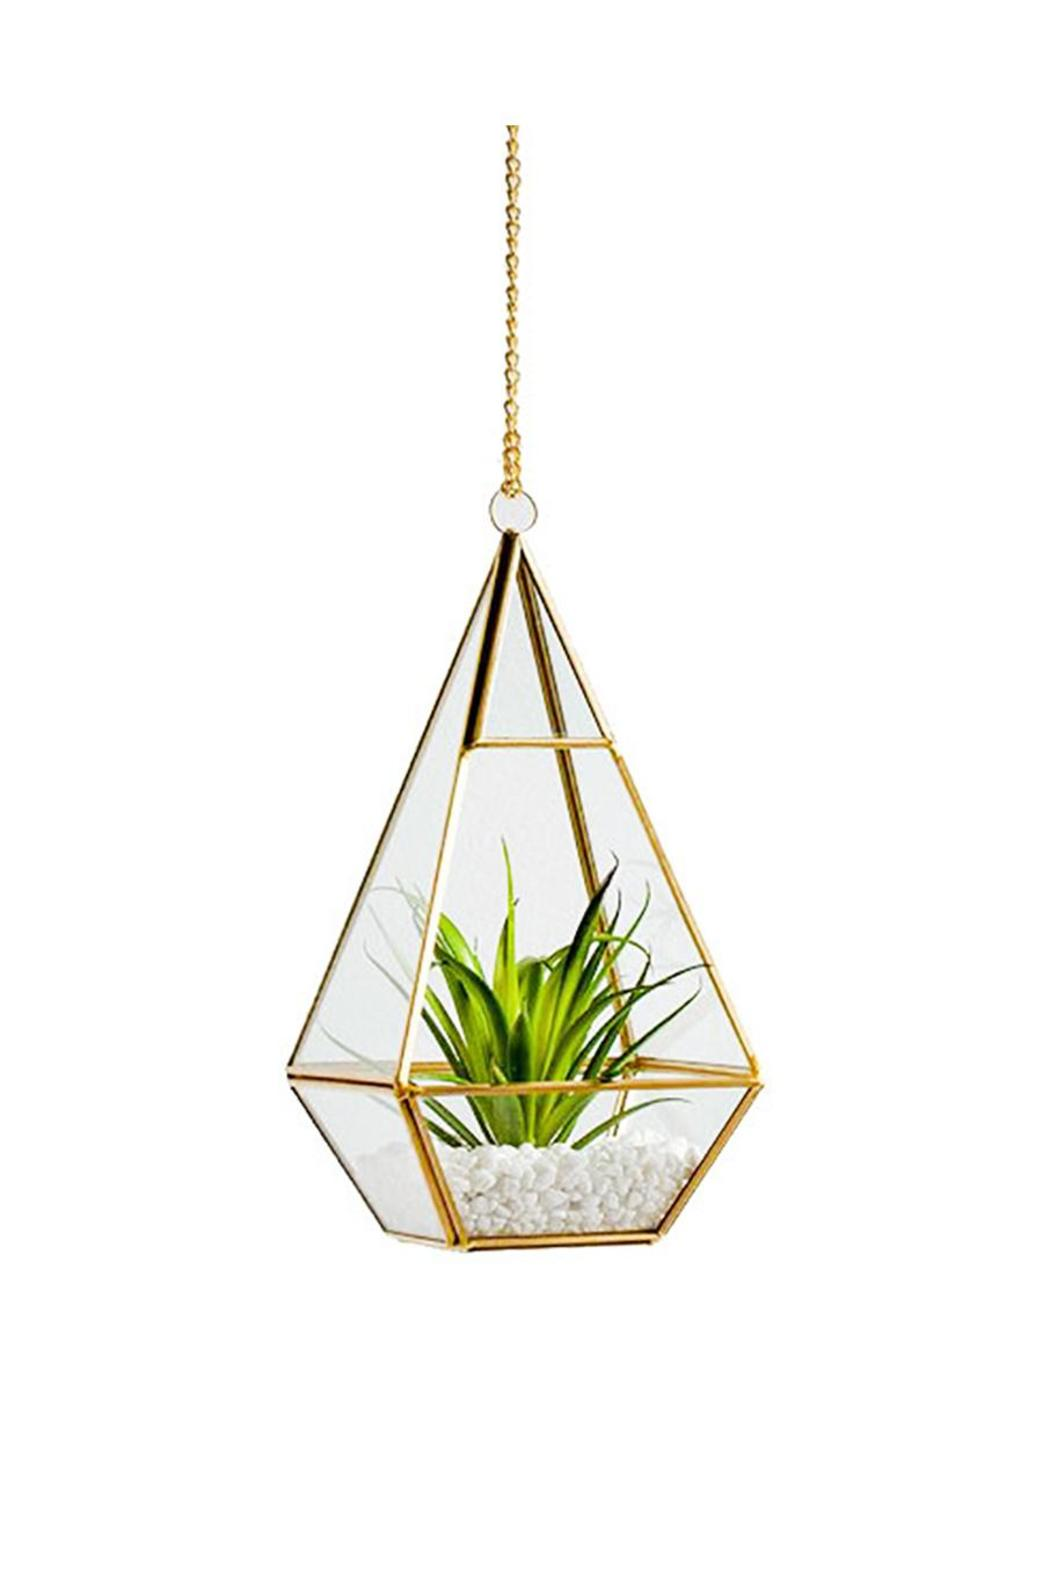 Black Rooster Decor Hanging Diamond Terrarium From Toronto By Black Rooster Decor Shoptiques